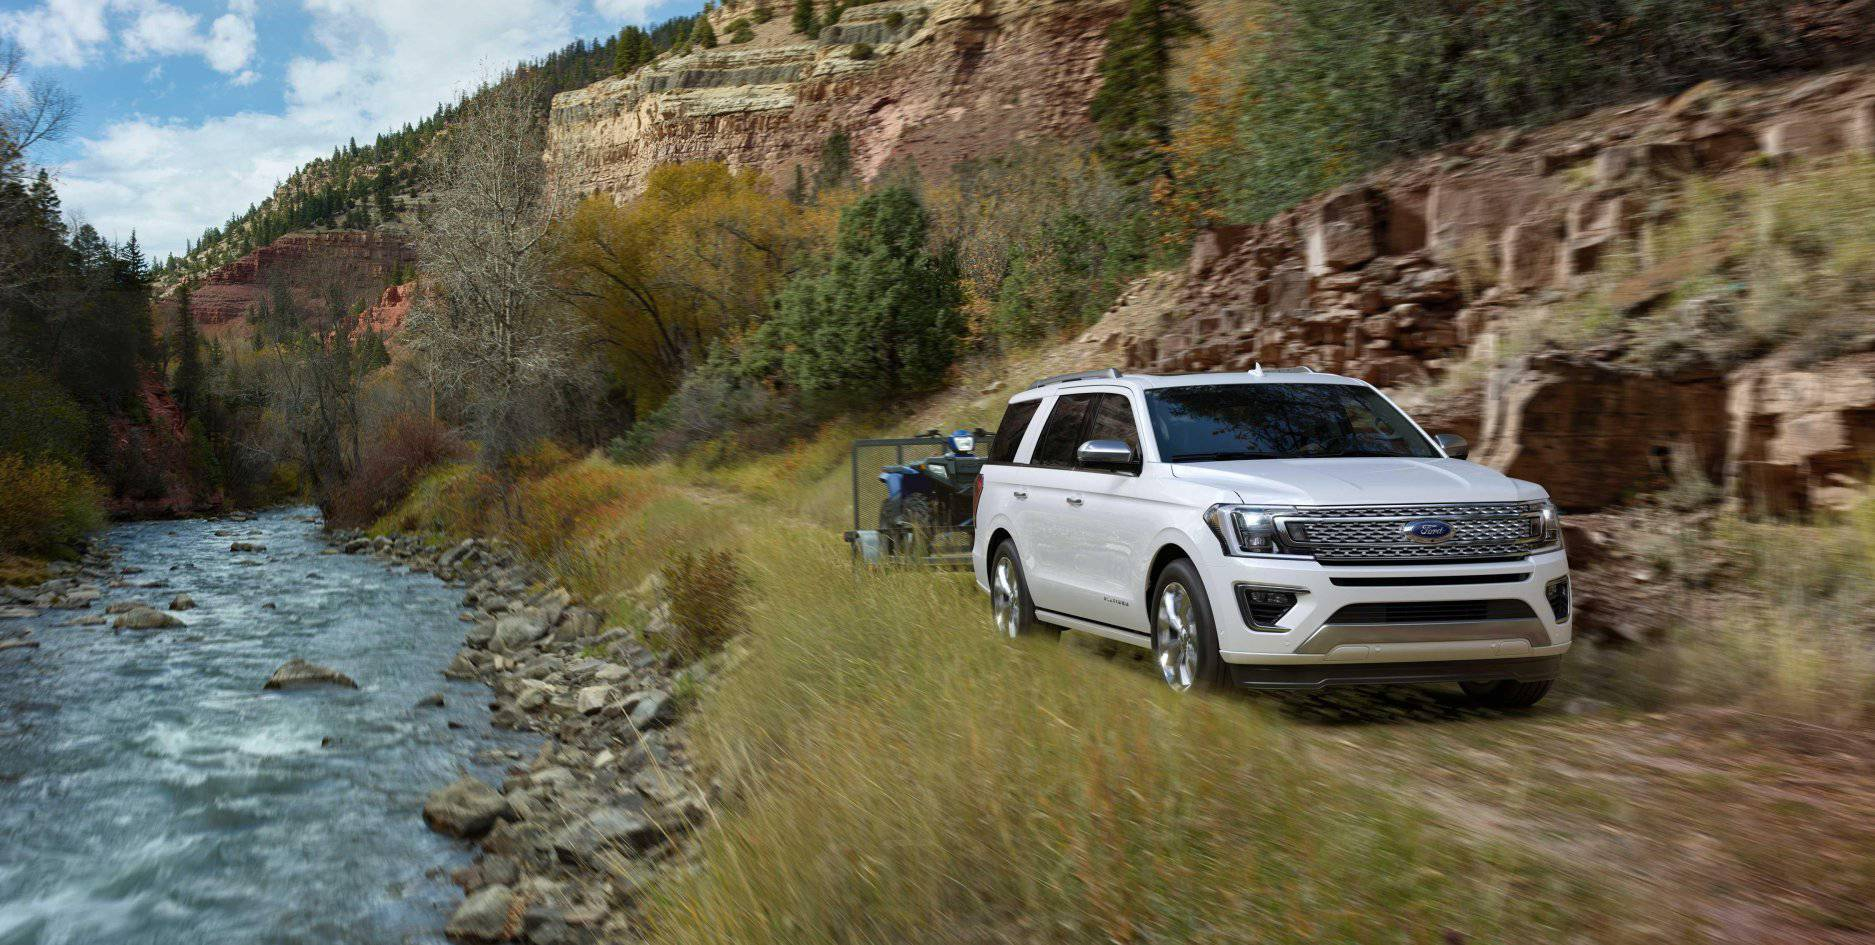 2018 Ford Expedition Price, Specs, Interior, Exterior